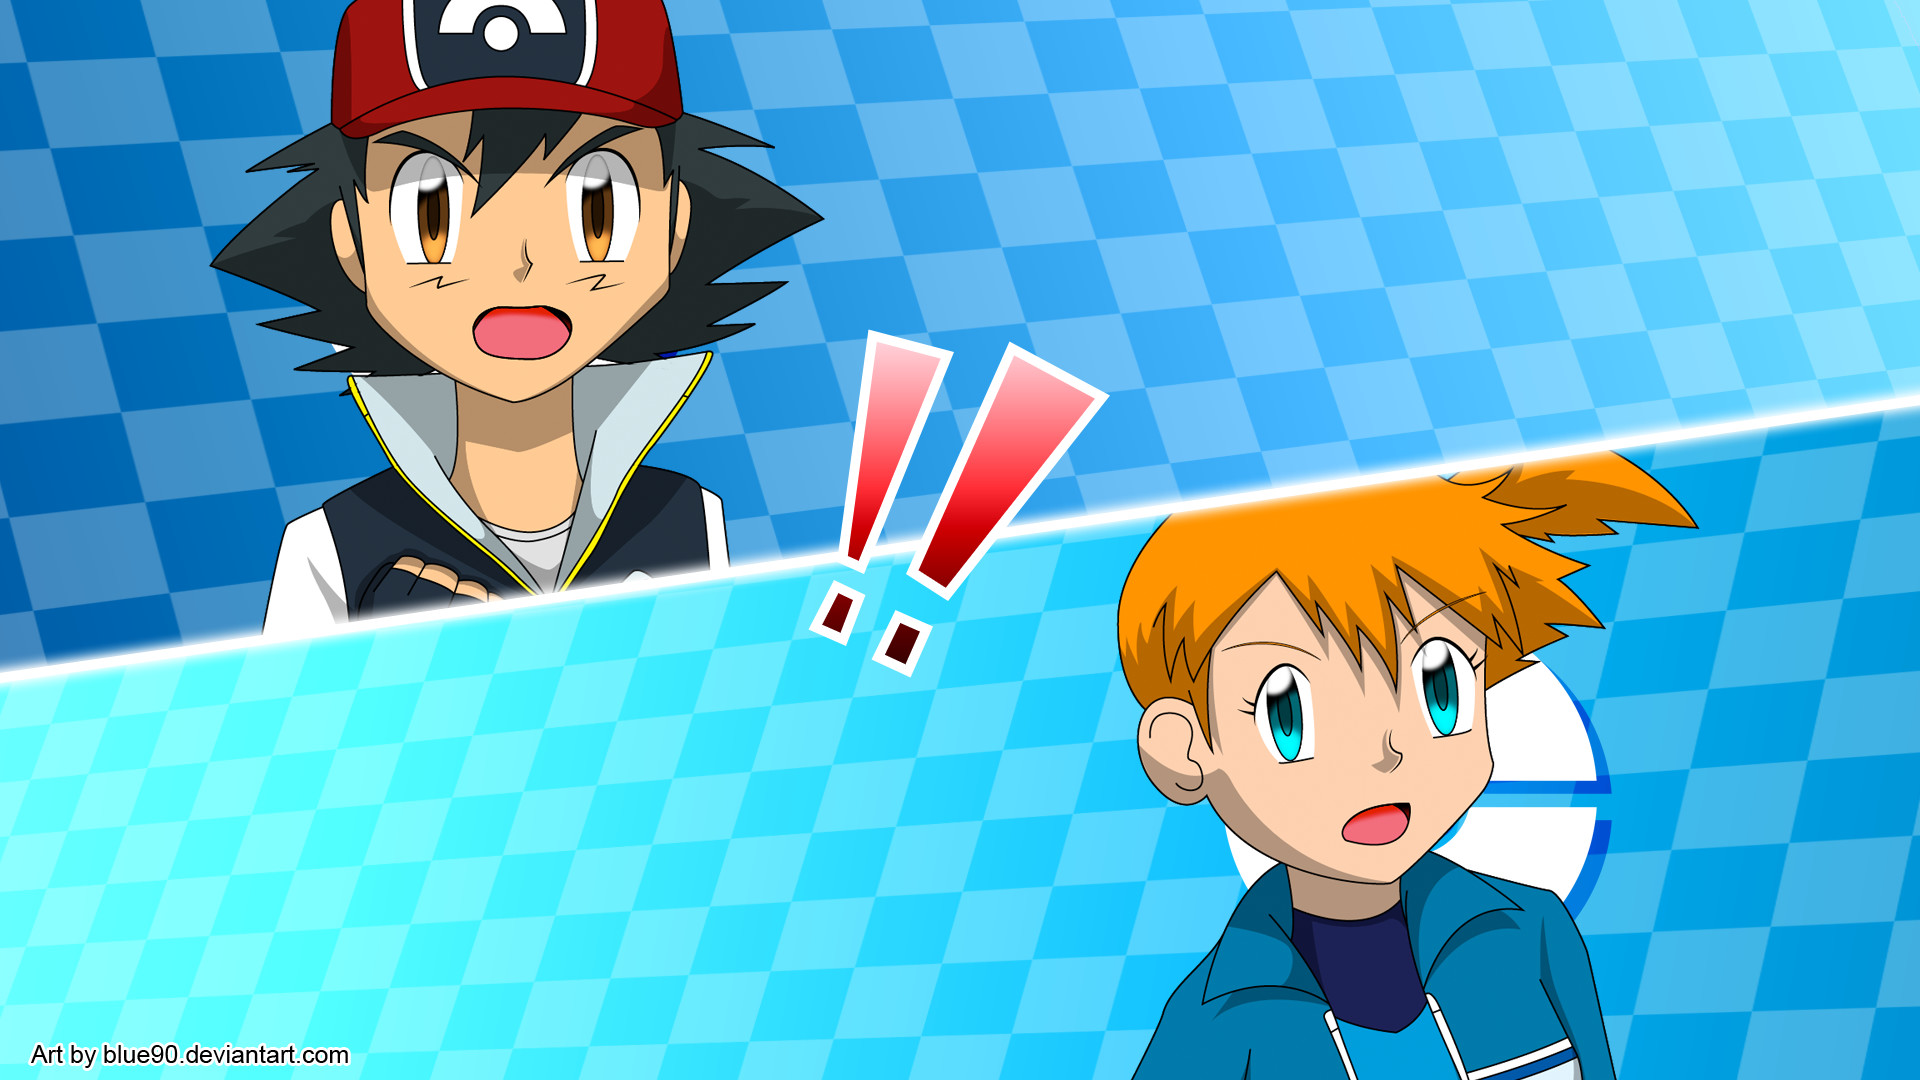 Res: 1920x1080, ... PKMN V - Ash and Misty All Out Attack by Blue90